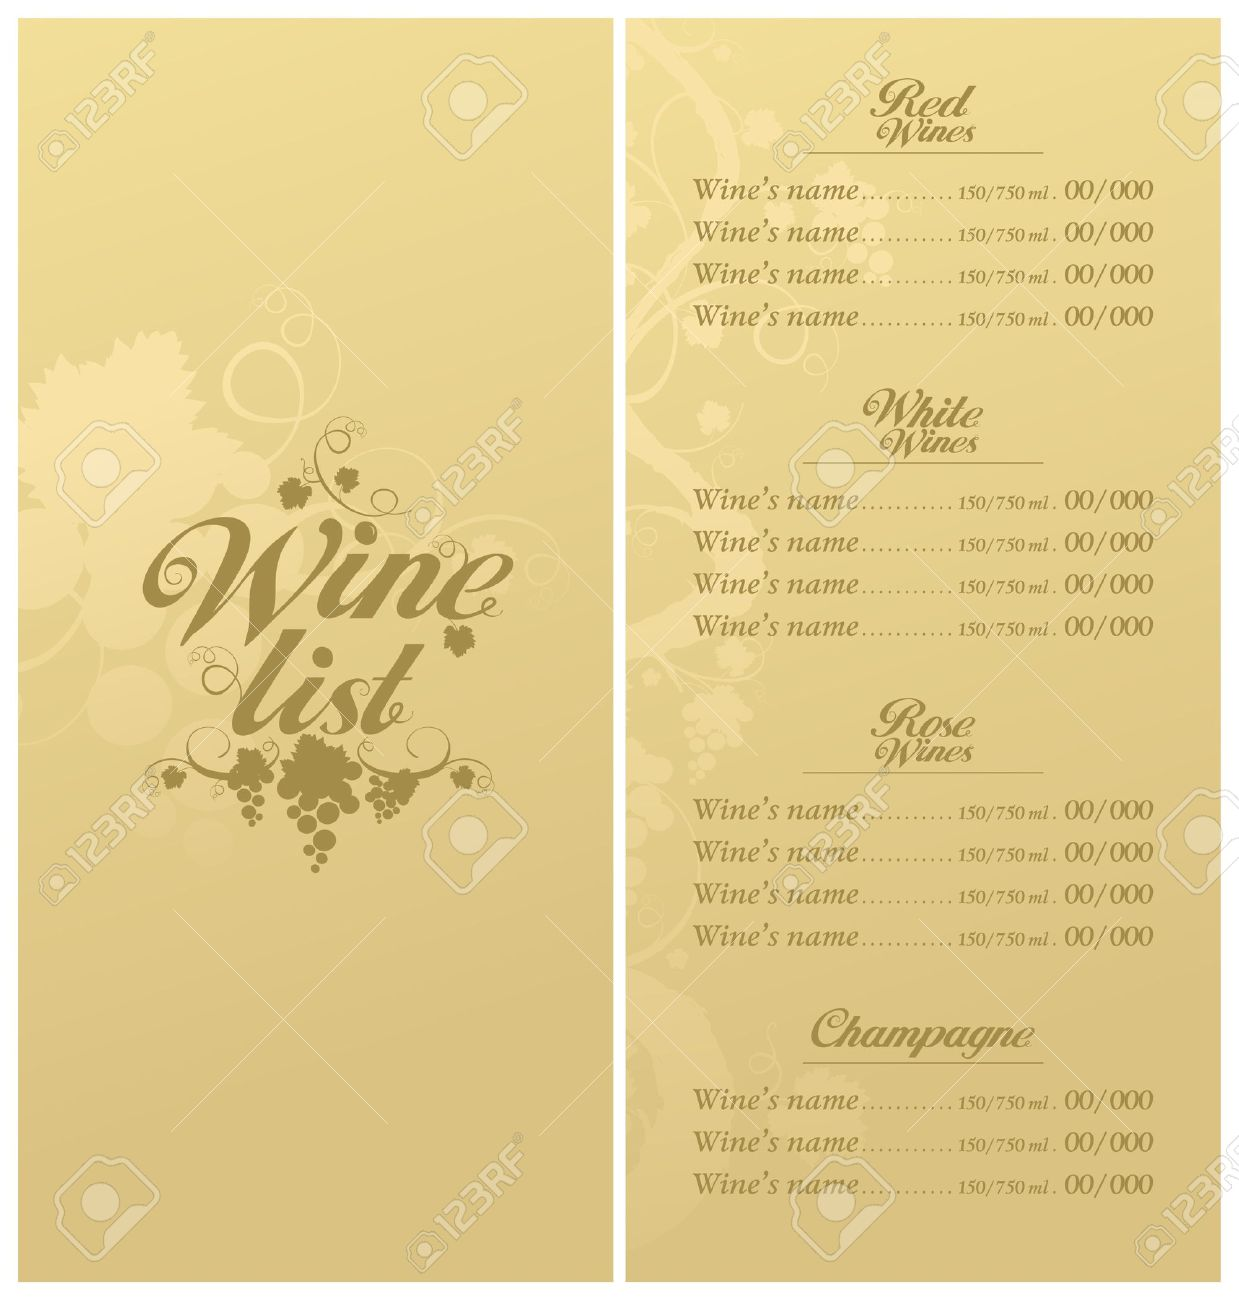 Wine List Menu Card Design Template. Royalty Free Cliparts, Vectors ...